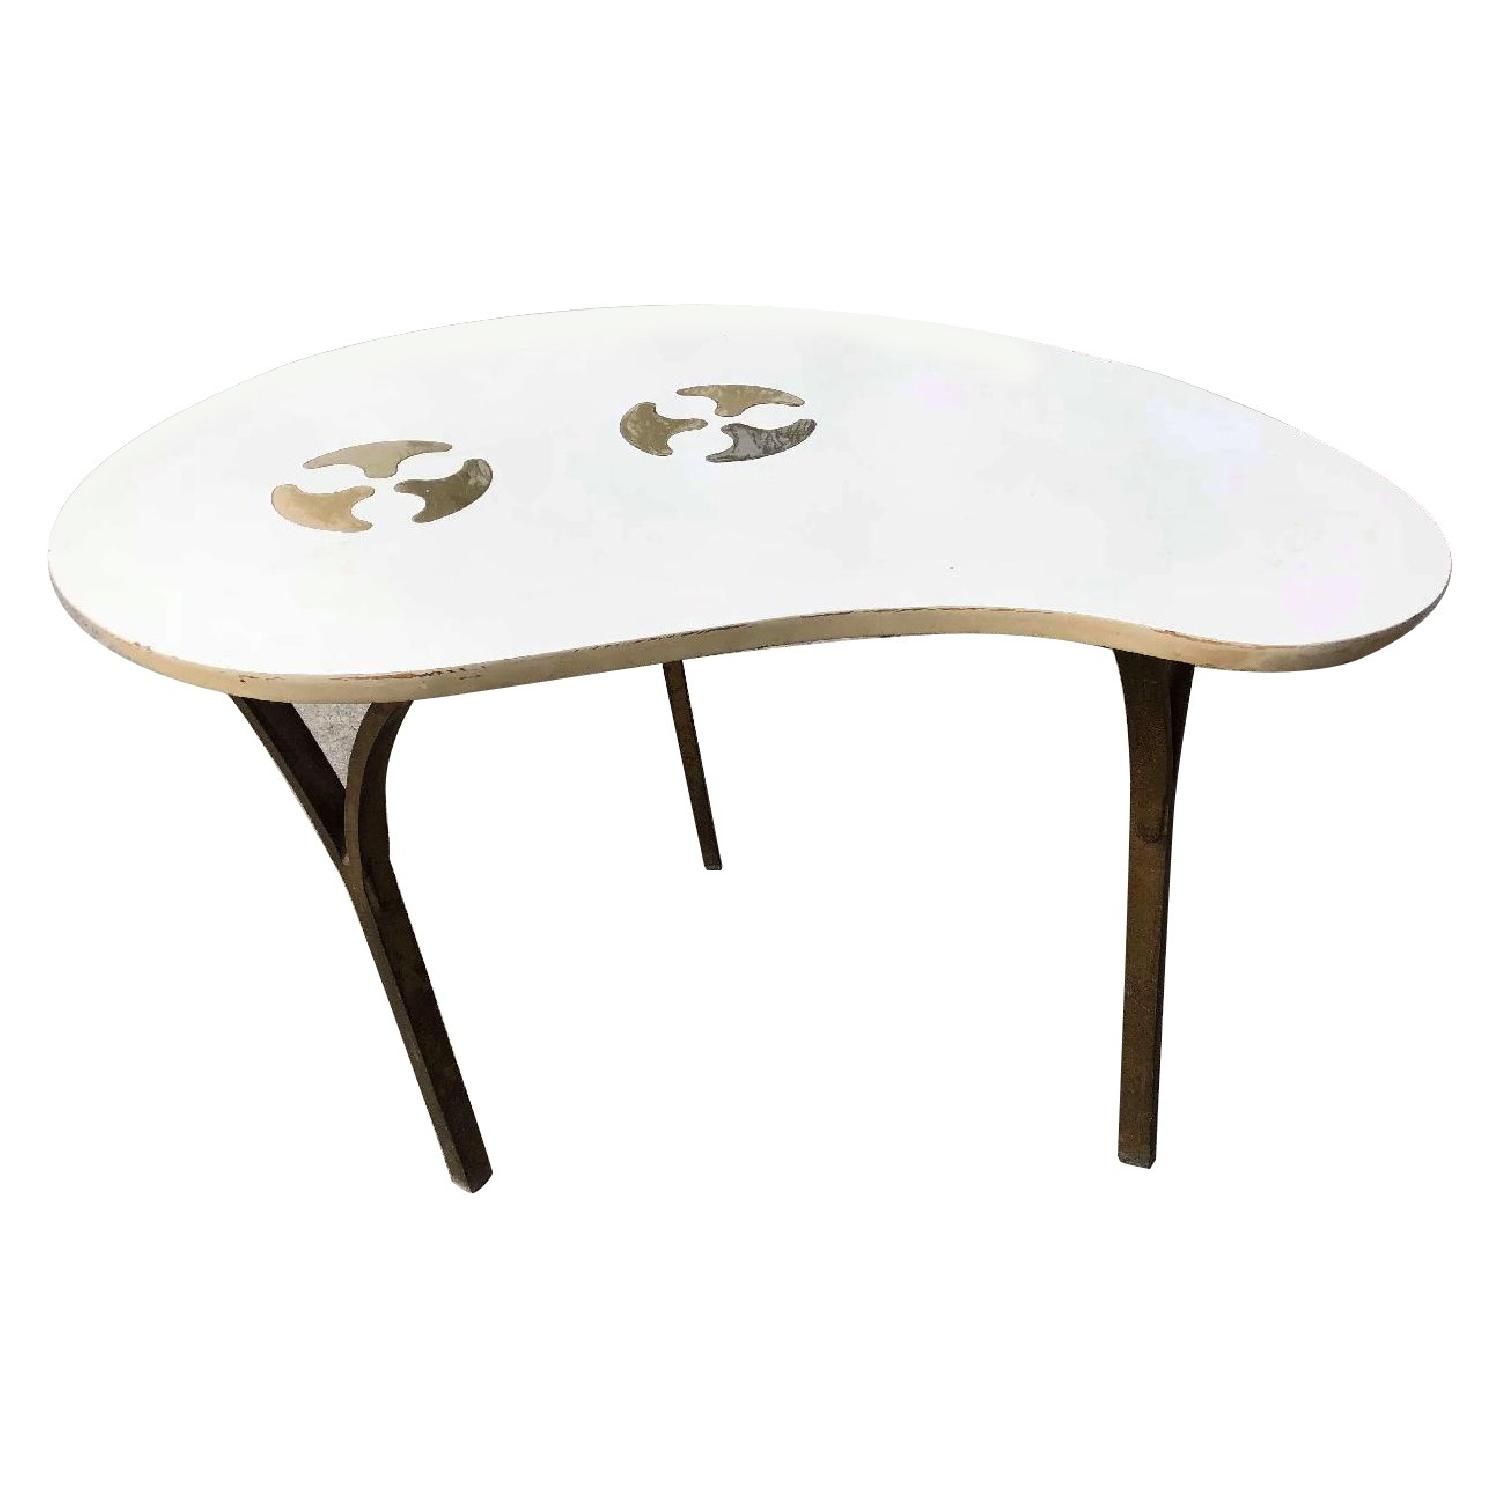 Mid Century S Kidney Shaped Coffee Table AptDeco - Mid century modern kidney shaped coffee table